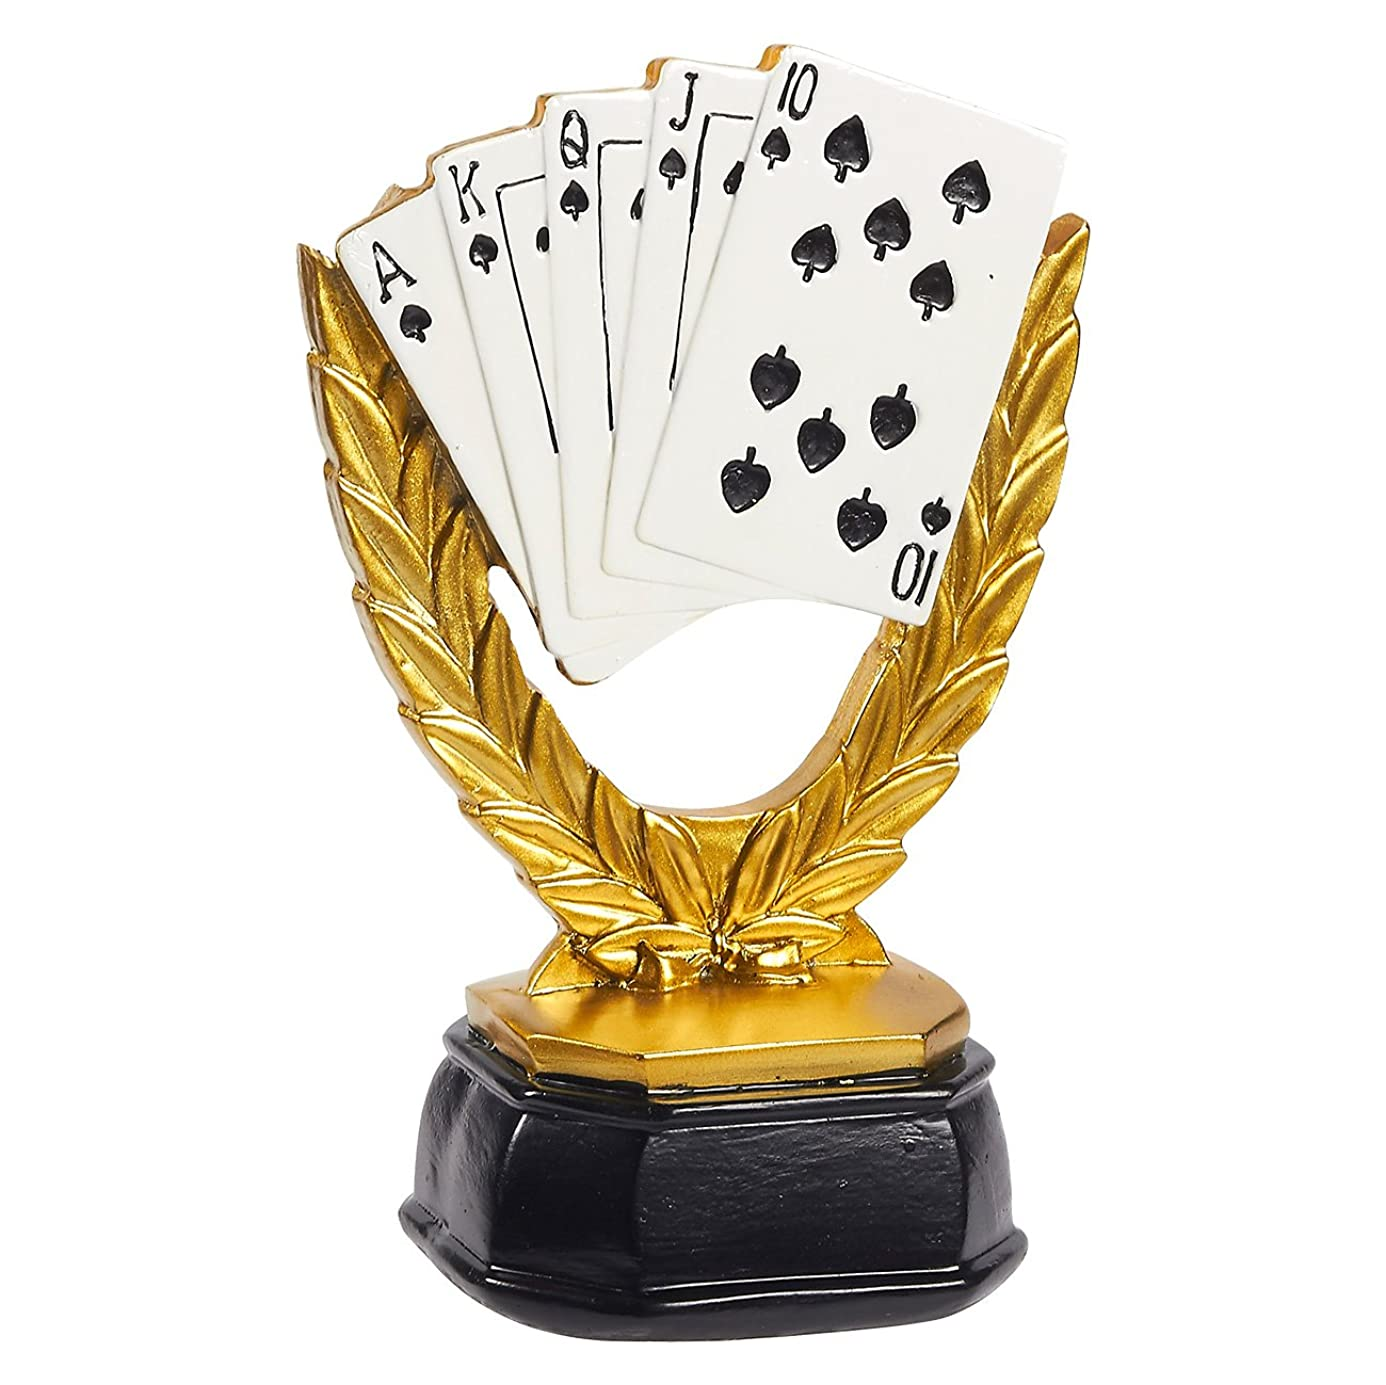 Juvale Poker Trophy - Small Playing Cards Resin Award Trophy for Poker Tournaments, Competitions, Parties, 5 x 7.75 x 3.75 Inches